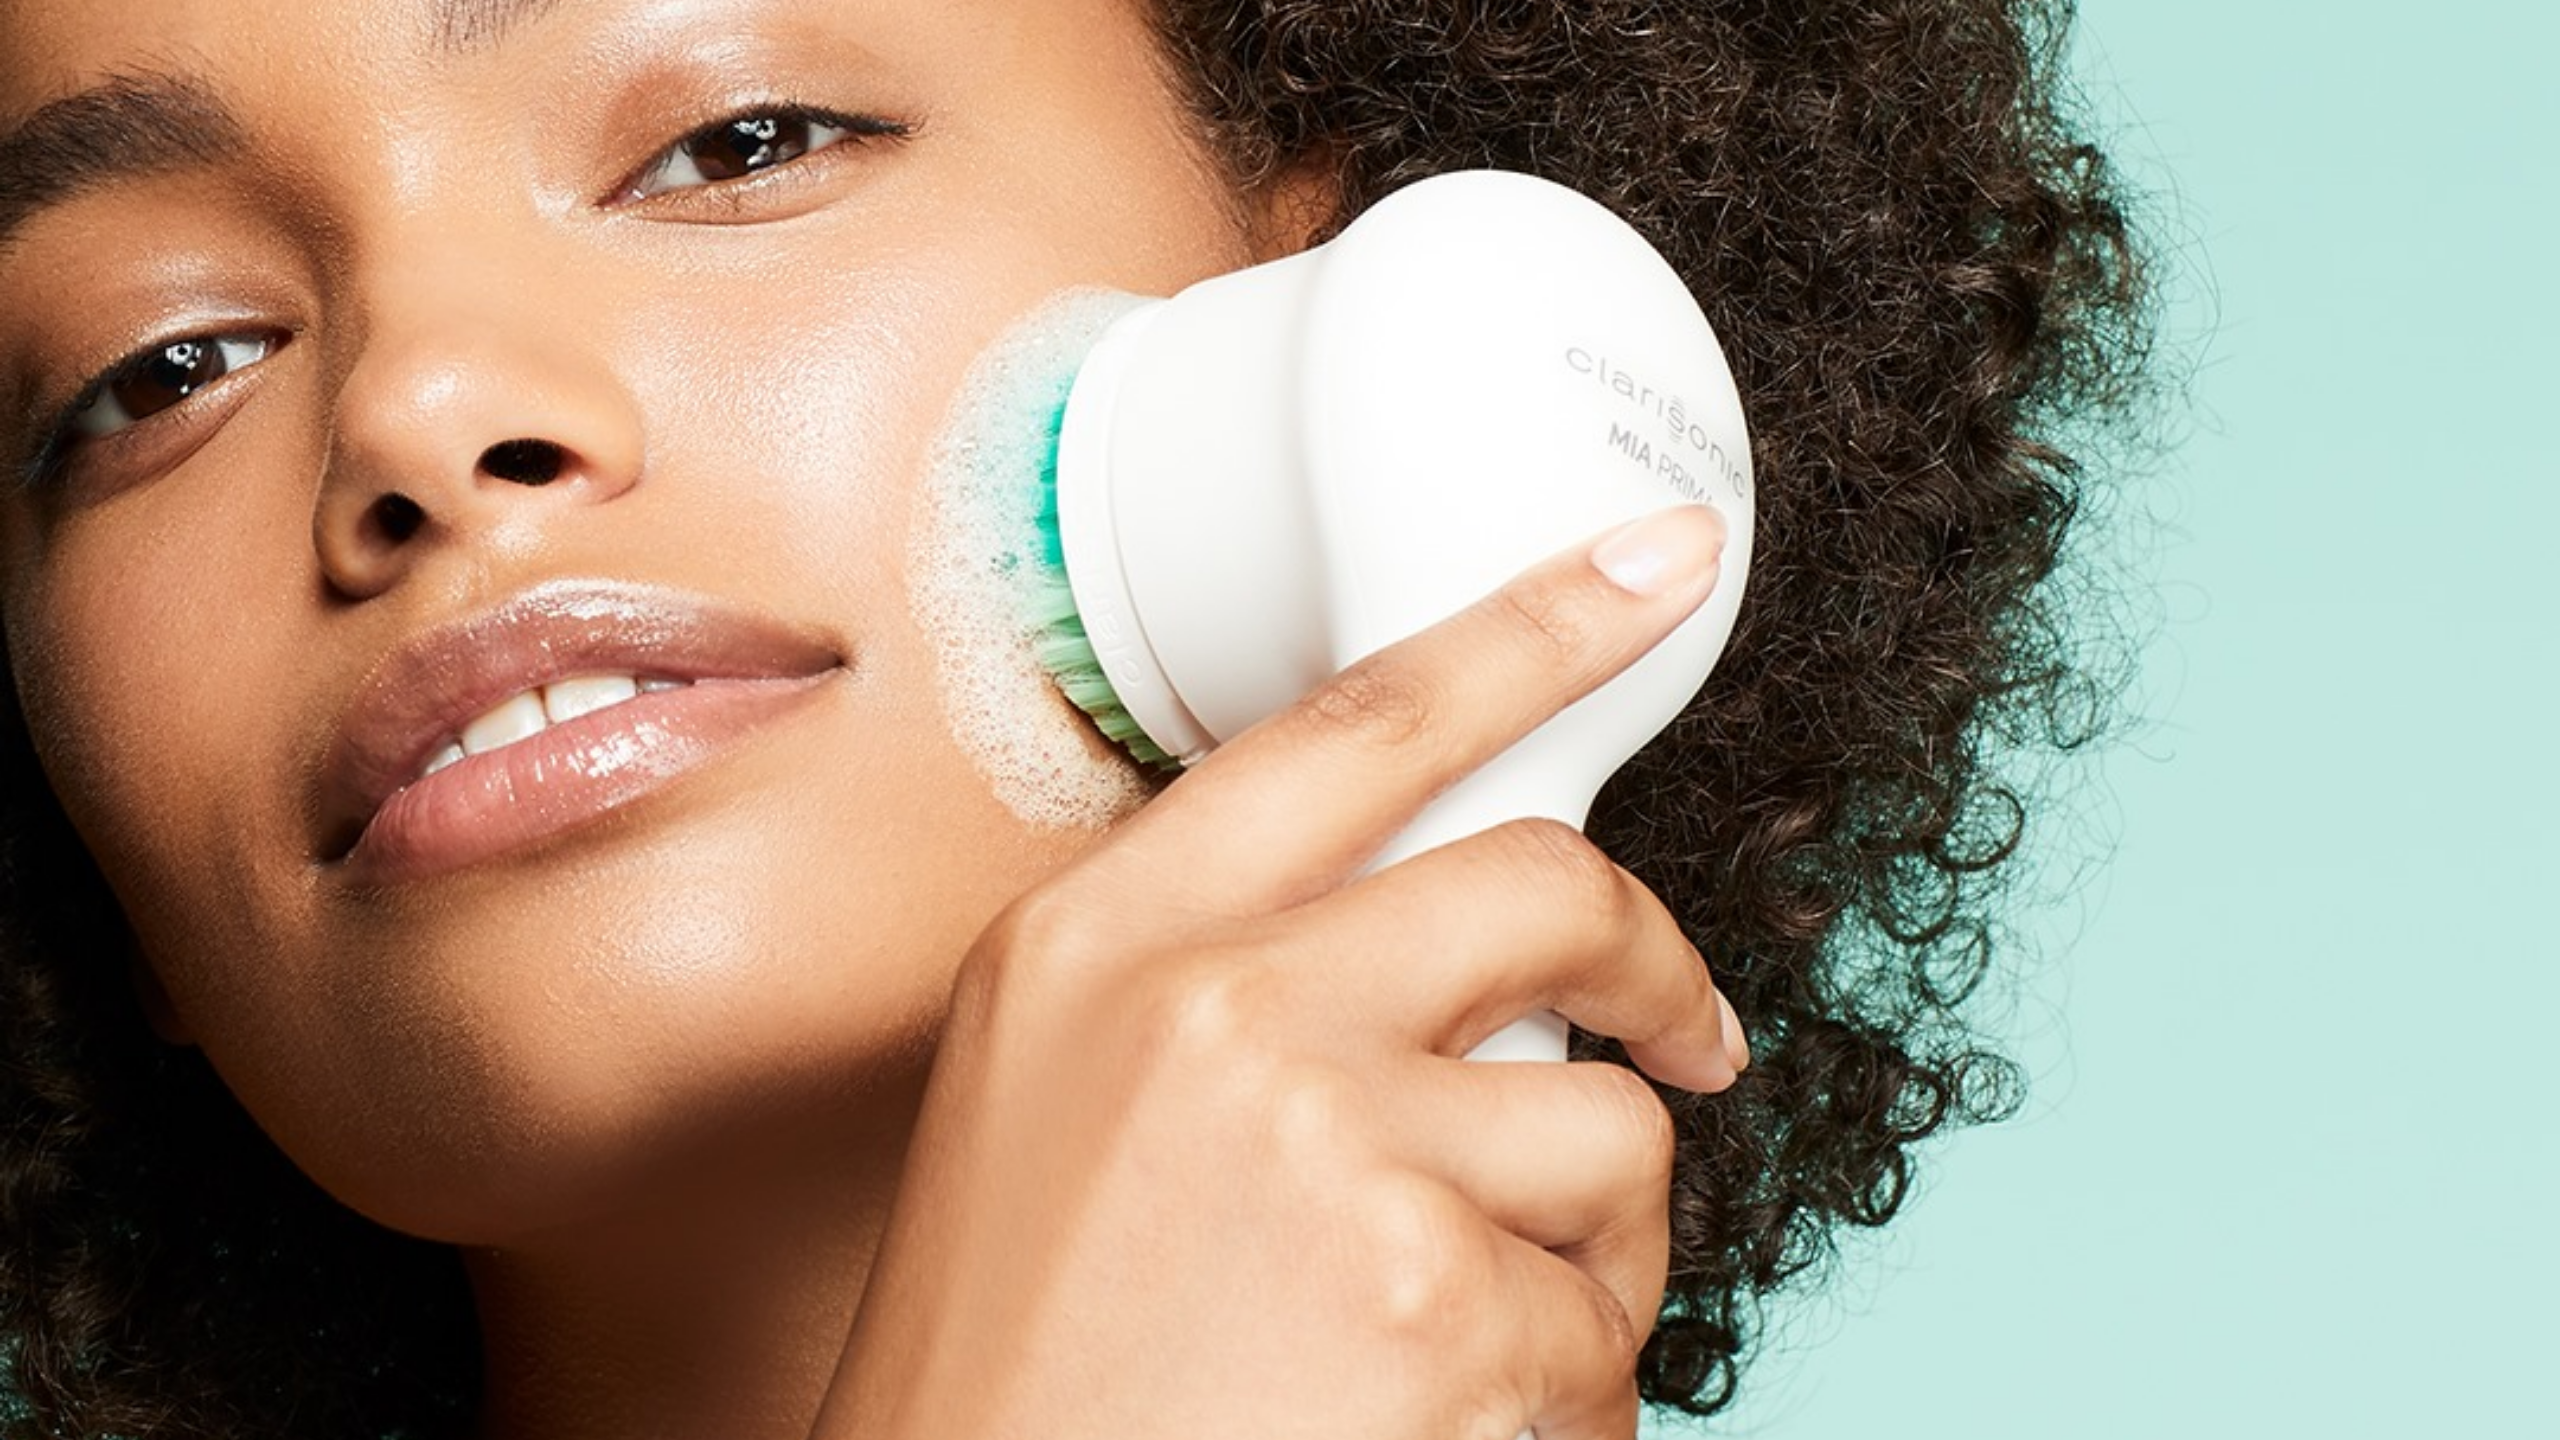 Clarisonic is back with CurrentBody